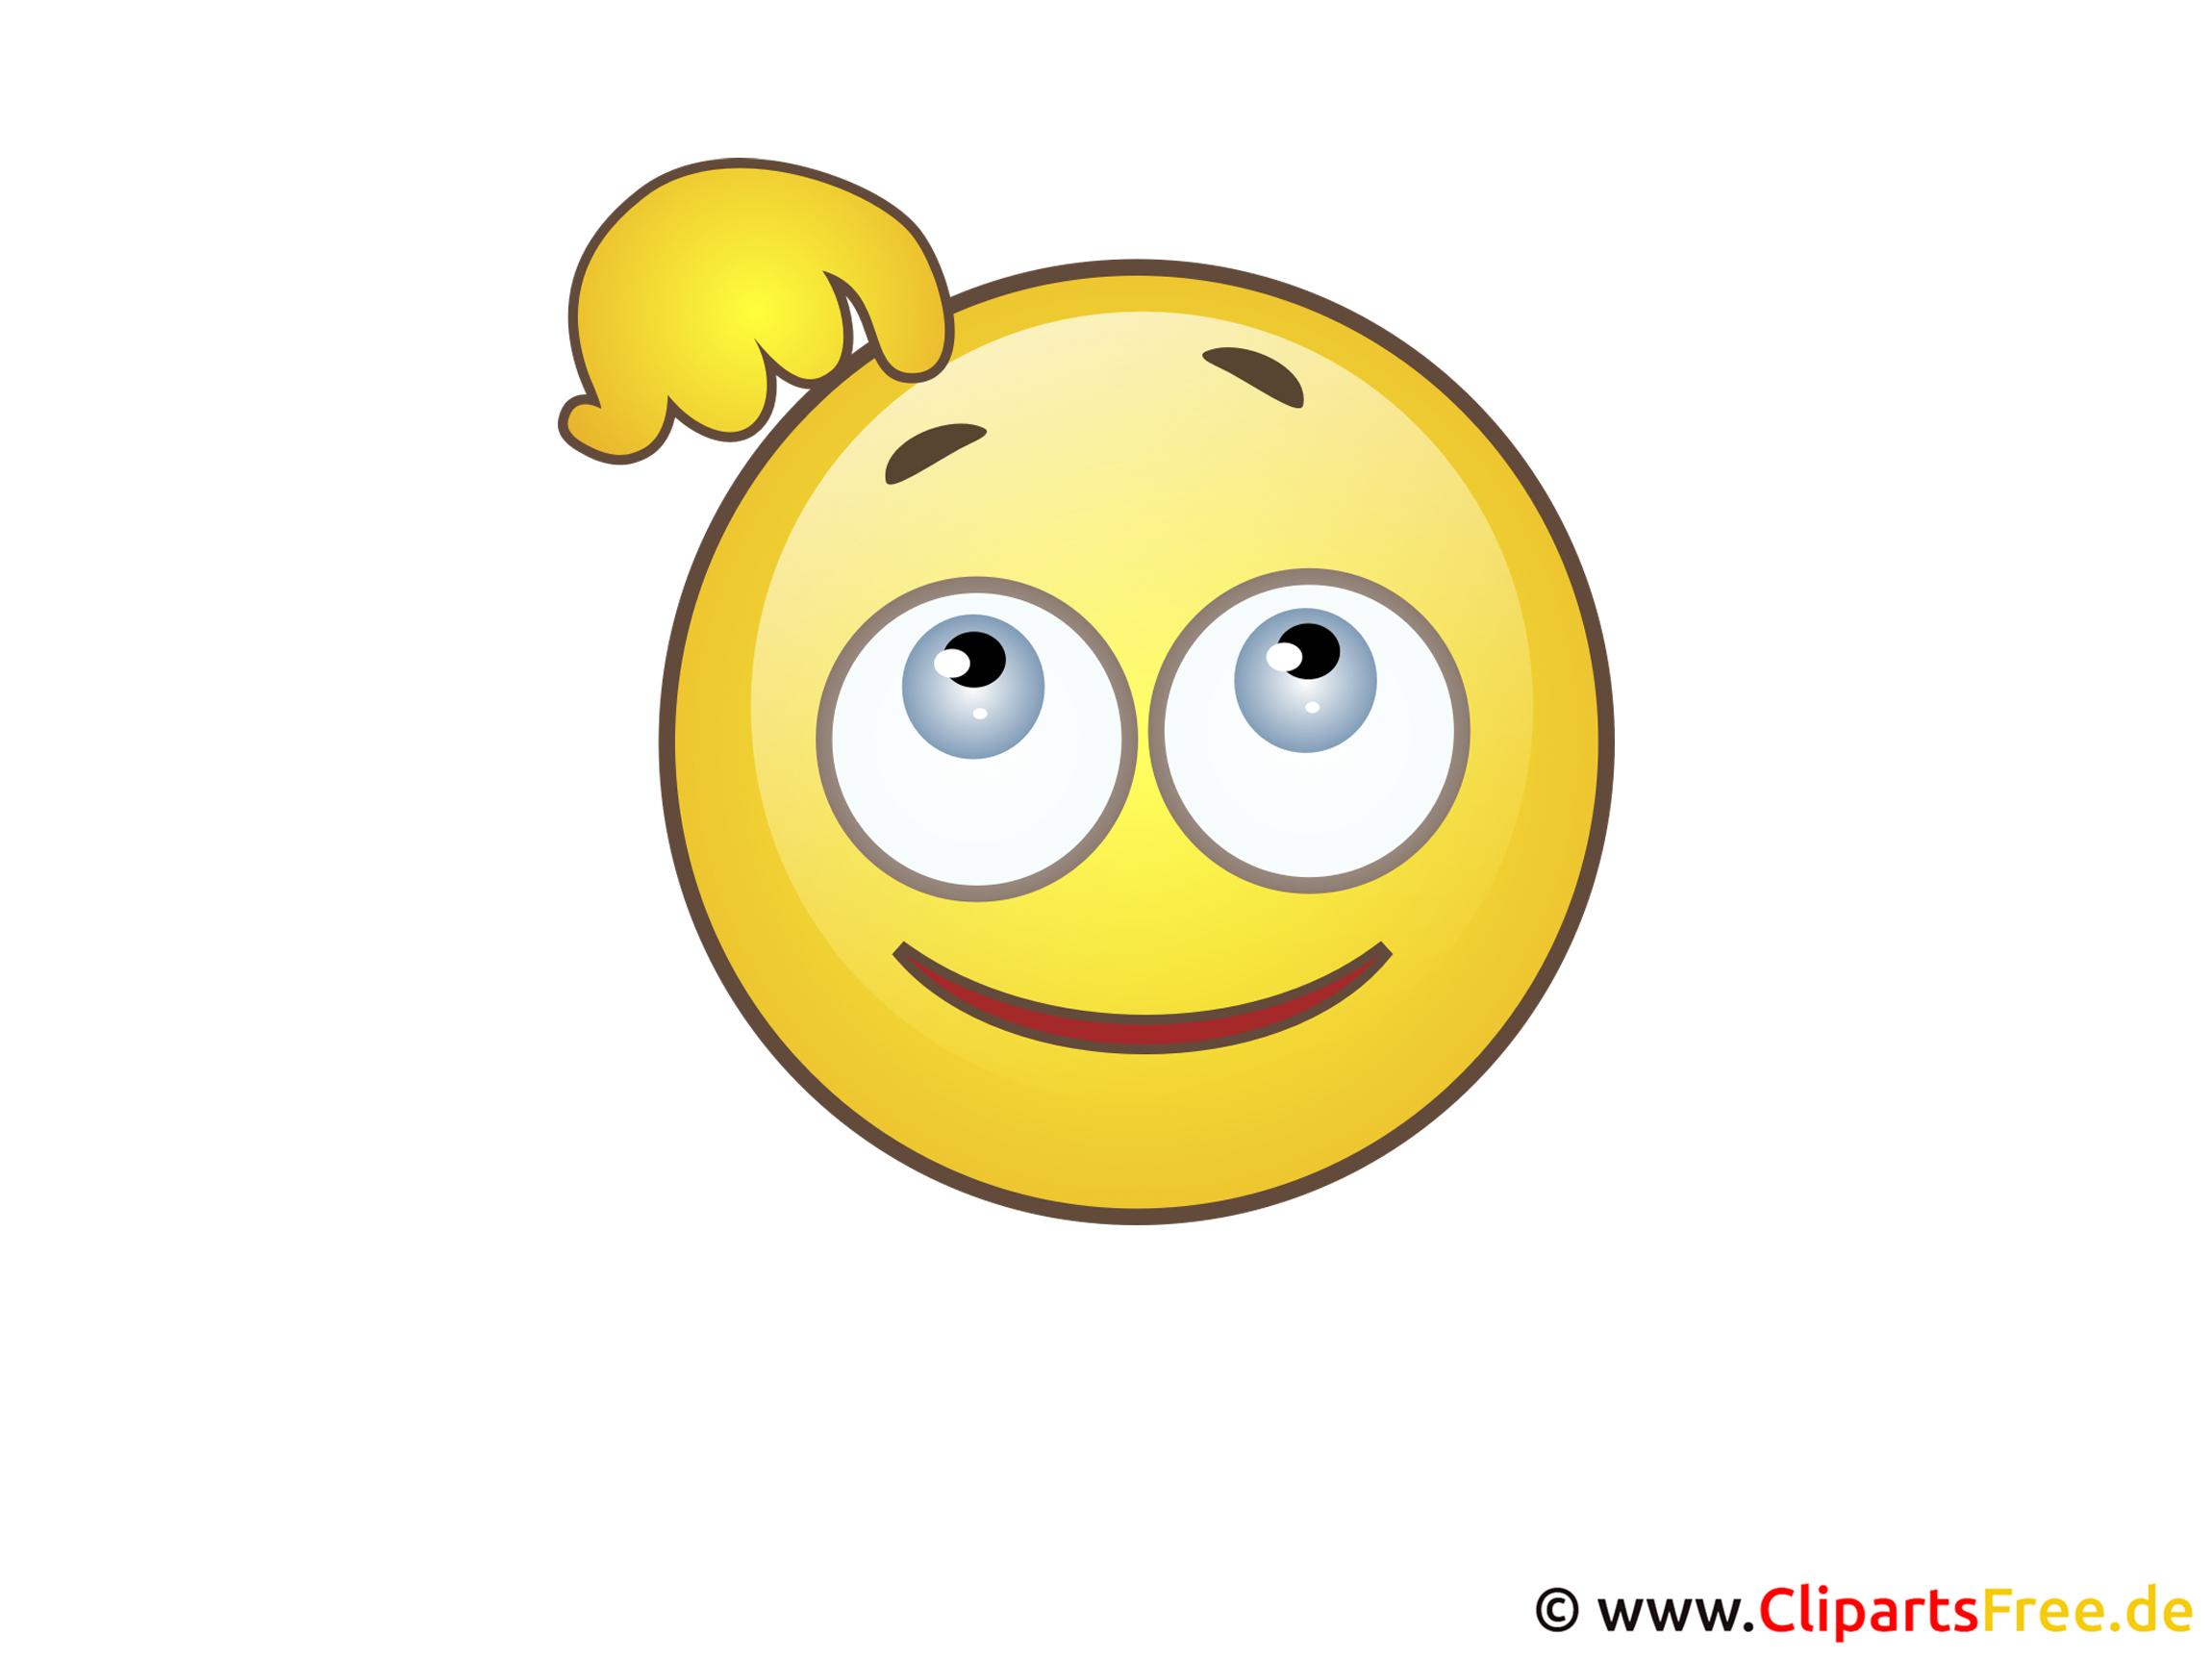 Smiley Thinking Face